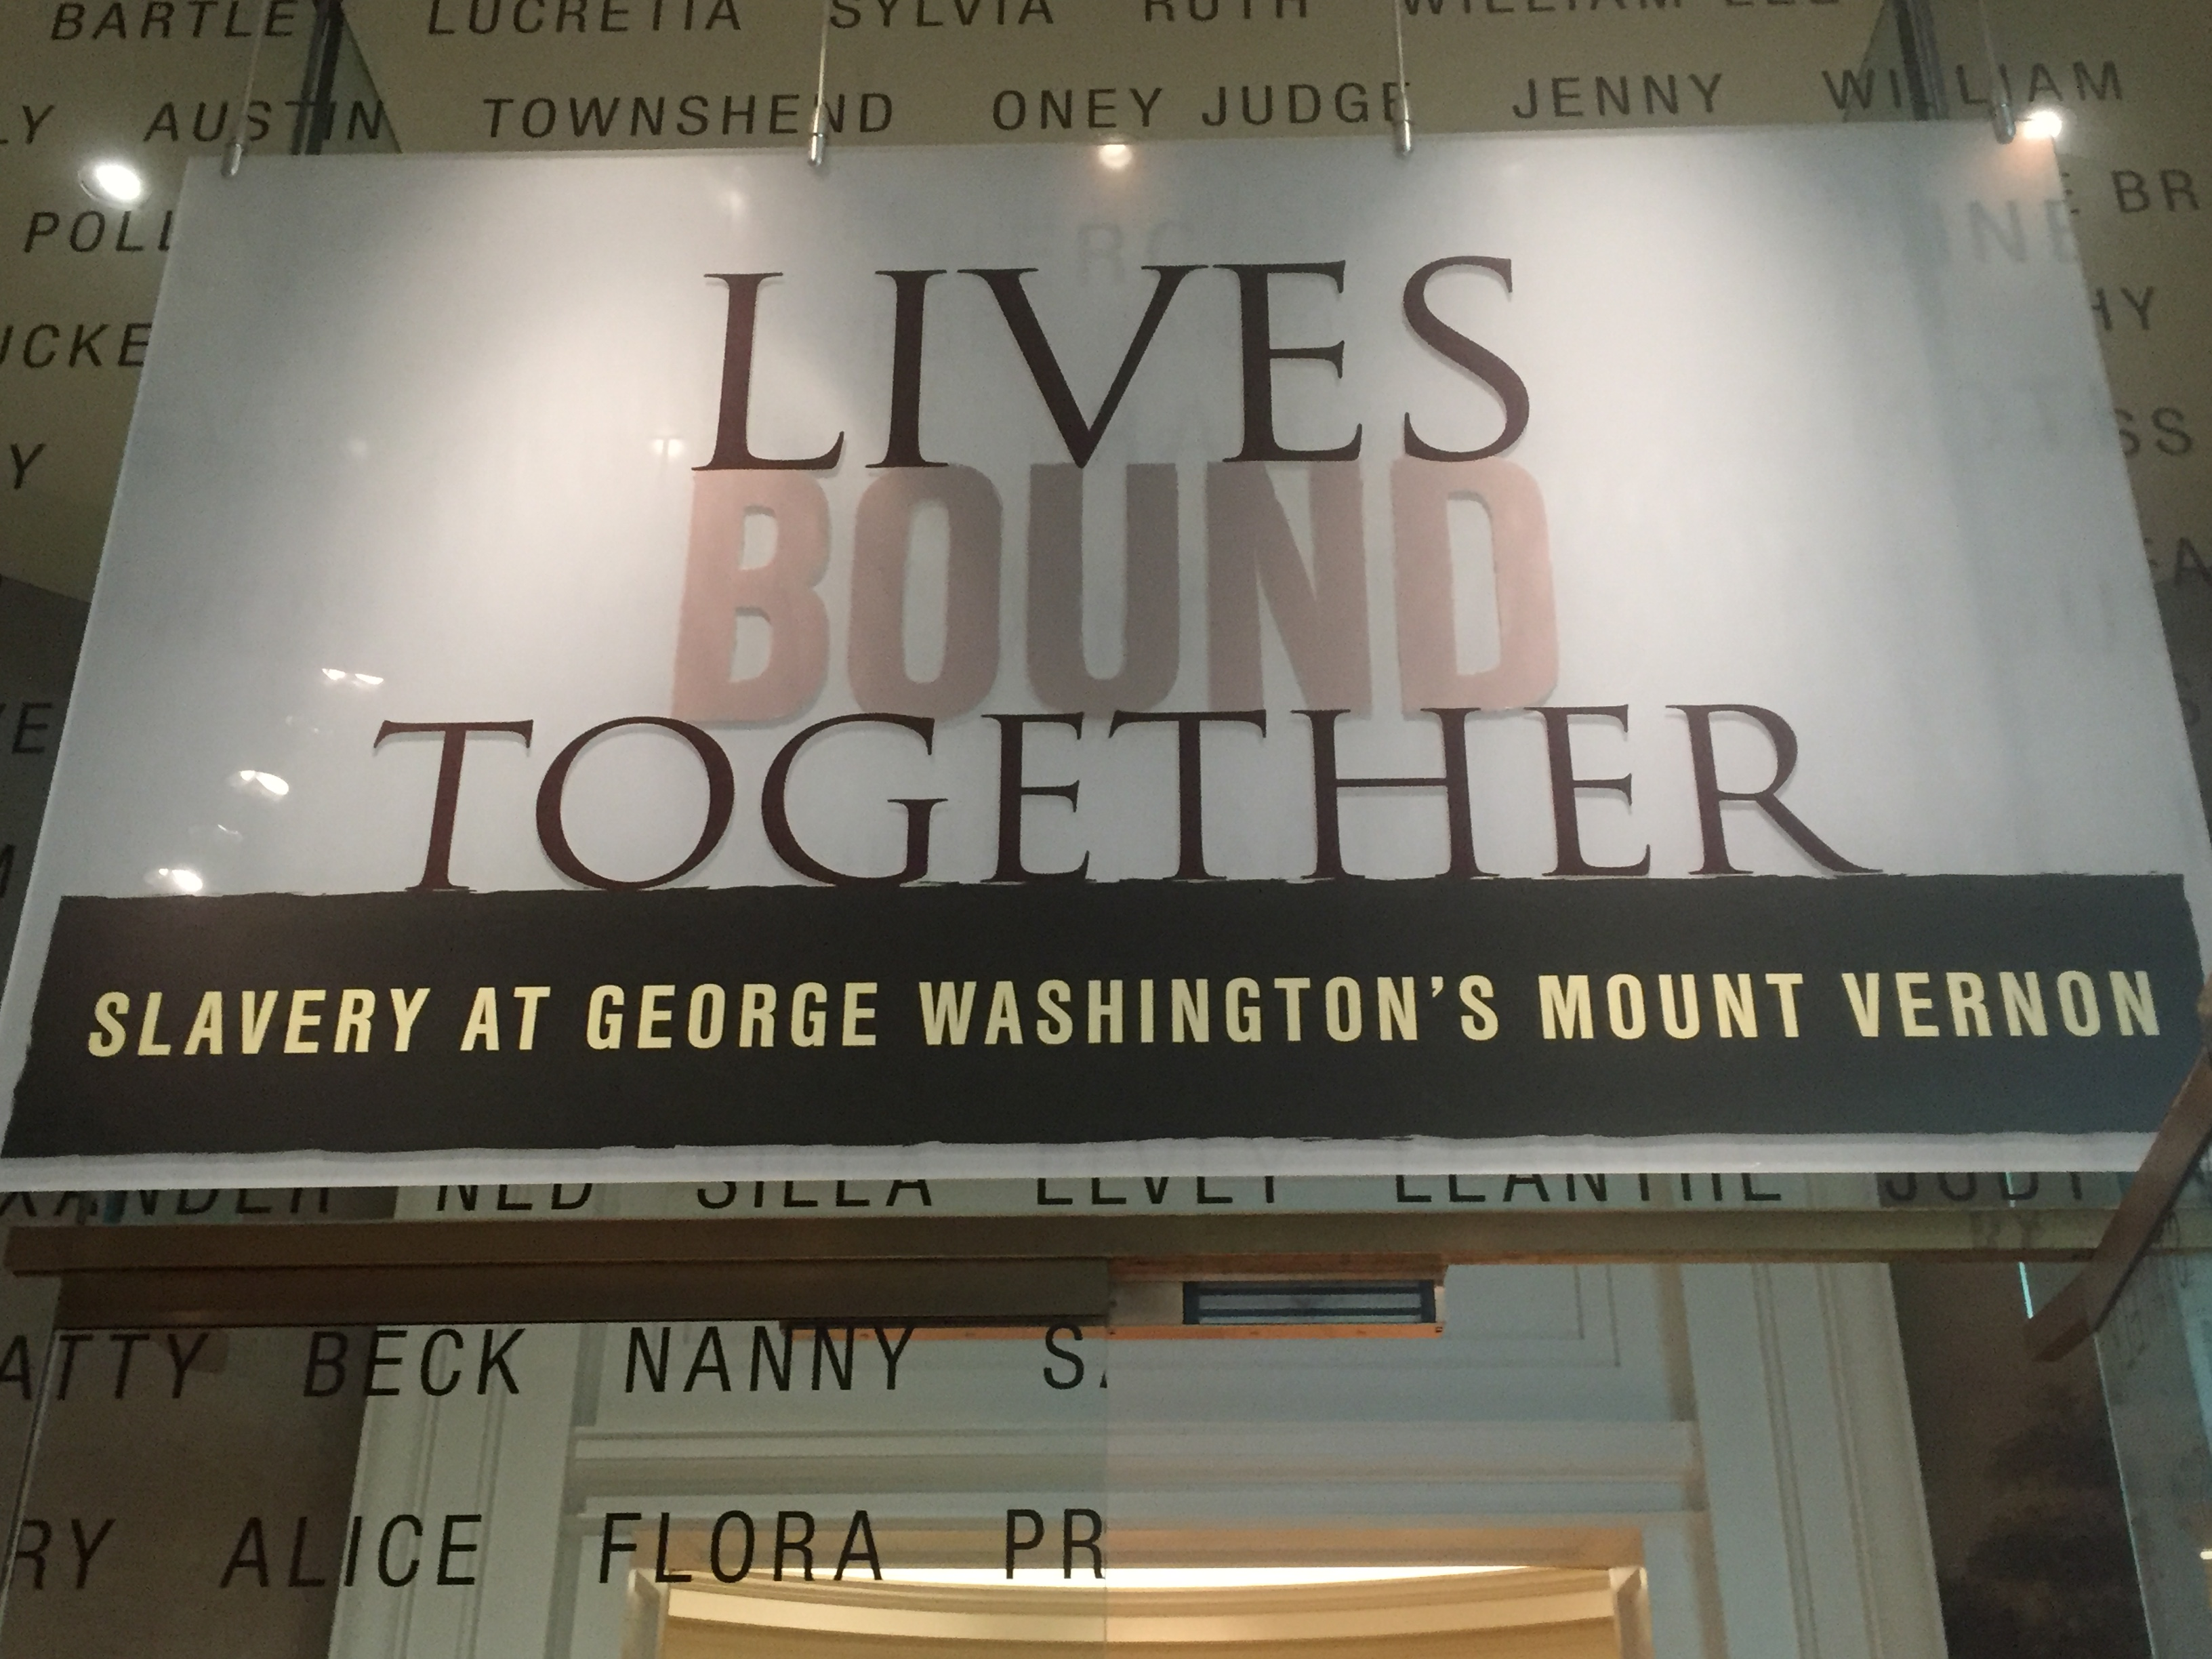 One of the most courageous of the new exhibits at Mount Vernon takes a frank and often shocking look at George Washington and his relationship with the 315 enslaved people he and Martha owned.